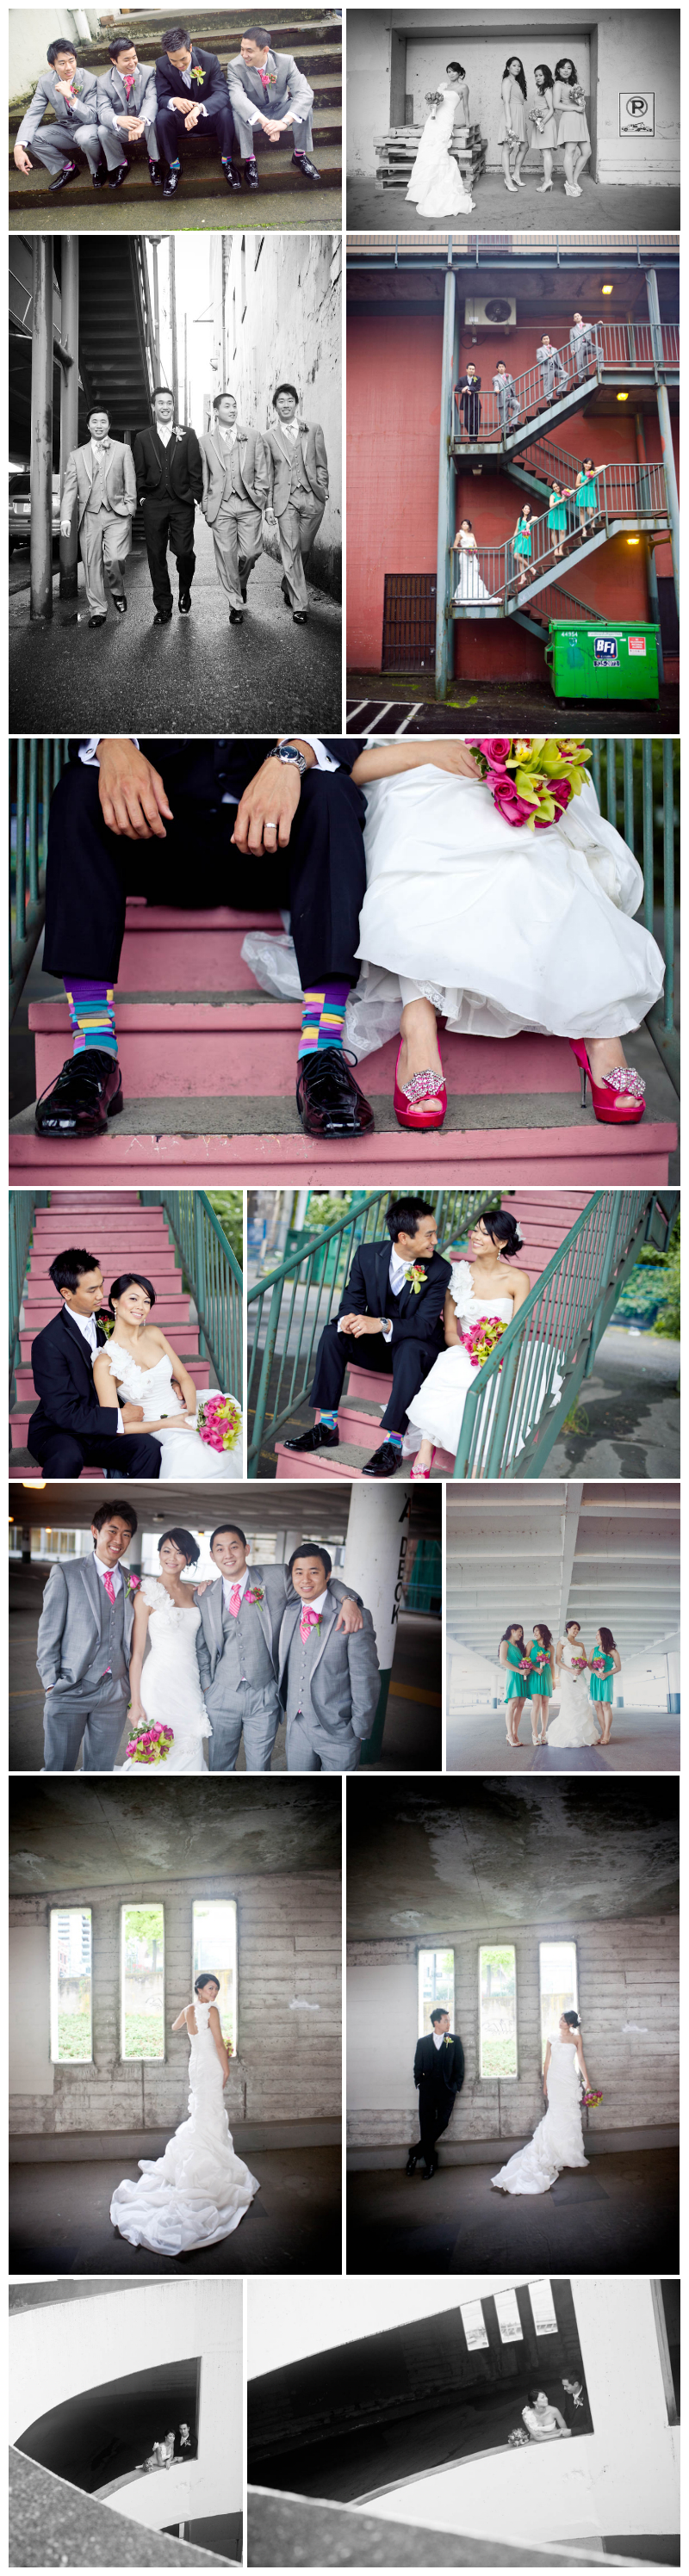 wedding photos, wedding photography, new west, new westminister, parkade, alley, stairs, wedding party, bridesmaids, groomsmen, pink shoes, striped socks, colour, urban, bouquet, hip, jayna marie, hair, makeup